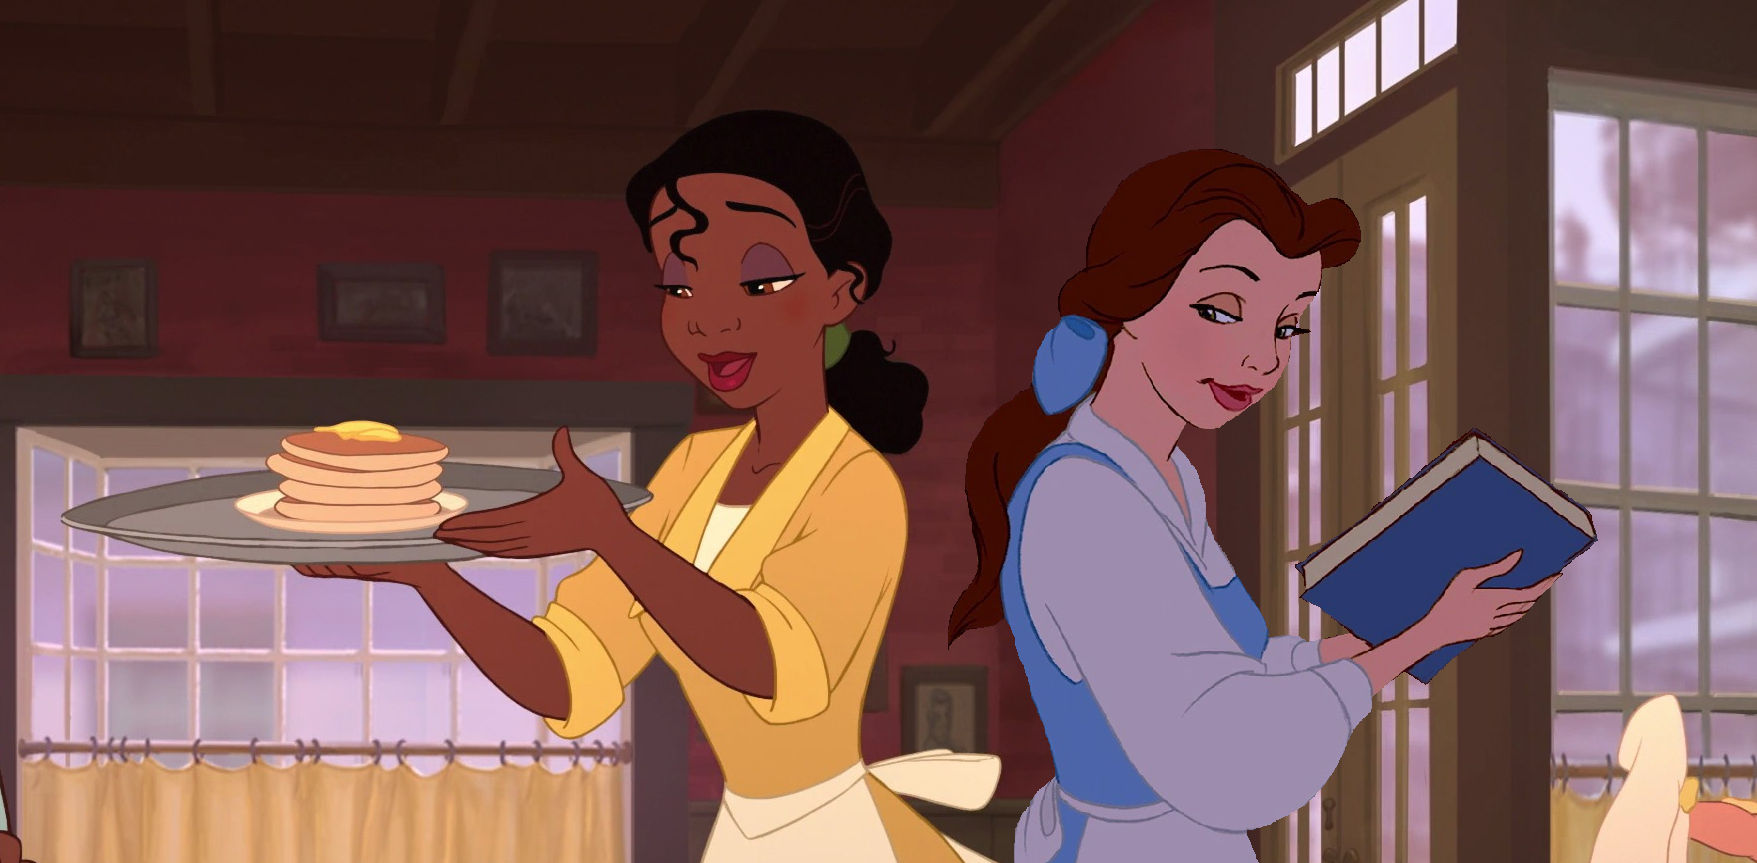 Which Disney Princess character do you think looks the